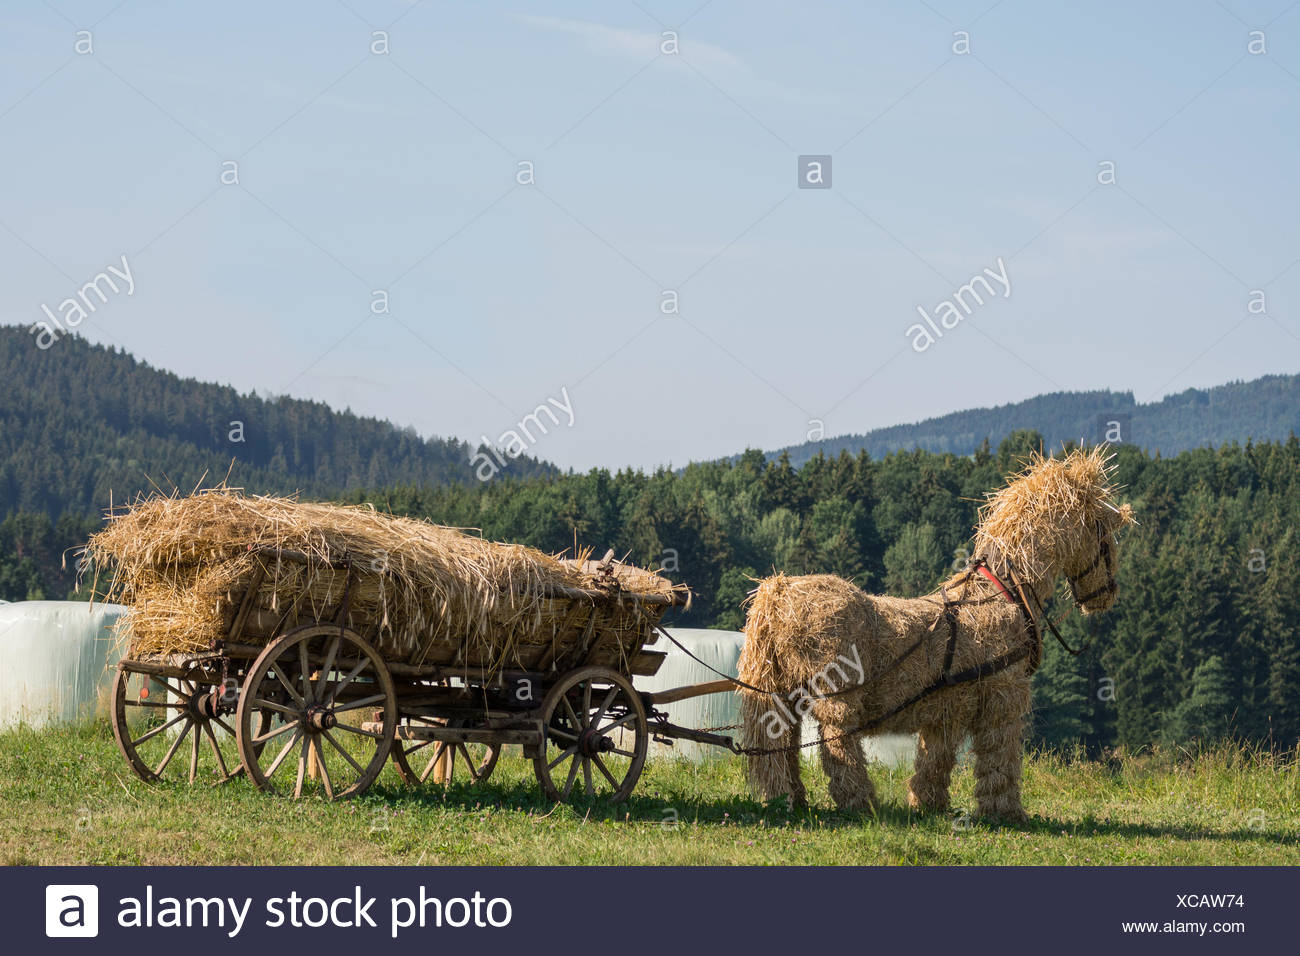 Straw horse inflated with thatched wooden wagon in the open countryside - Stock Image